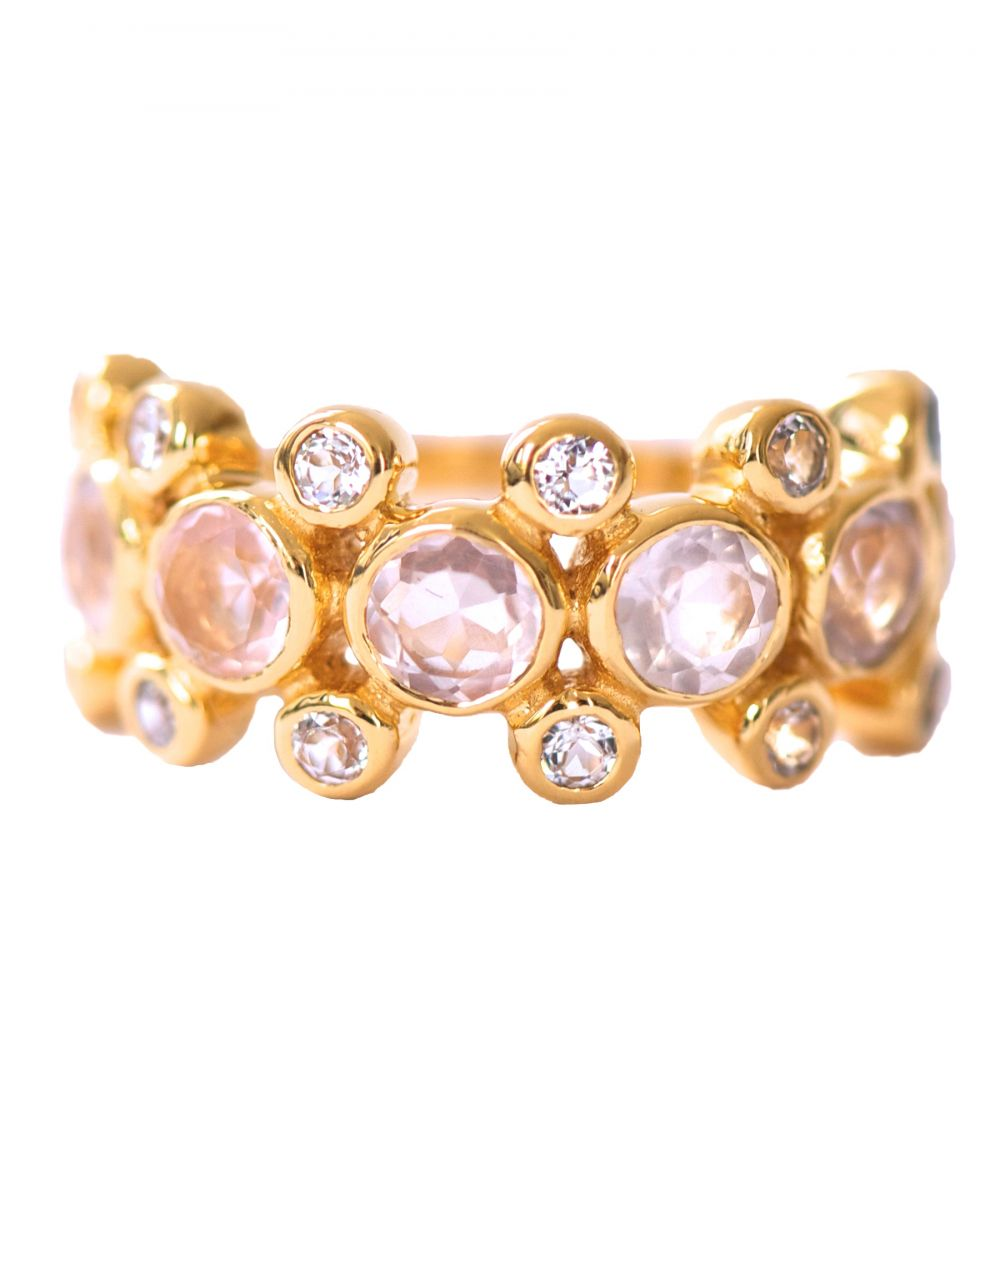 Rebecca Ring<br /><i><small>18K Gold Plated with Rose Quartz & White Topaz</small></i><br /> - Eddera